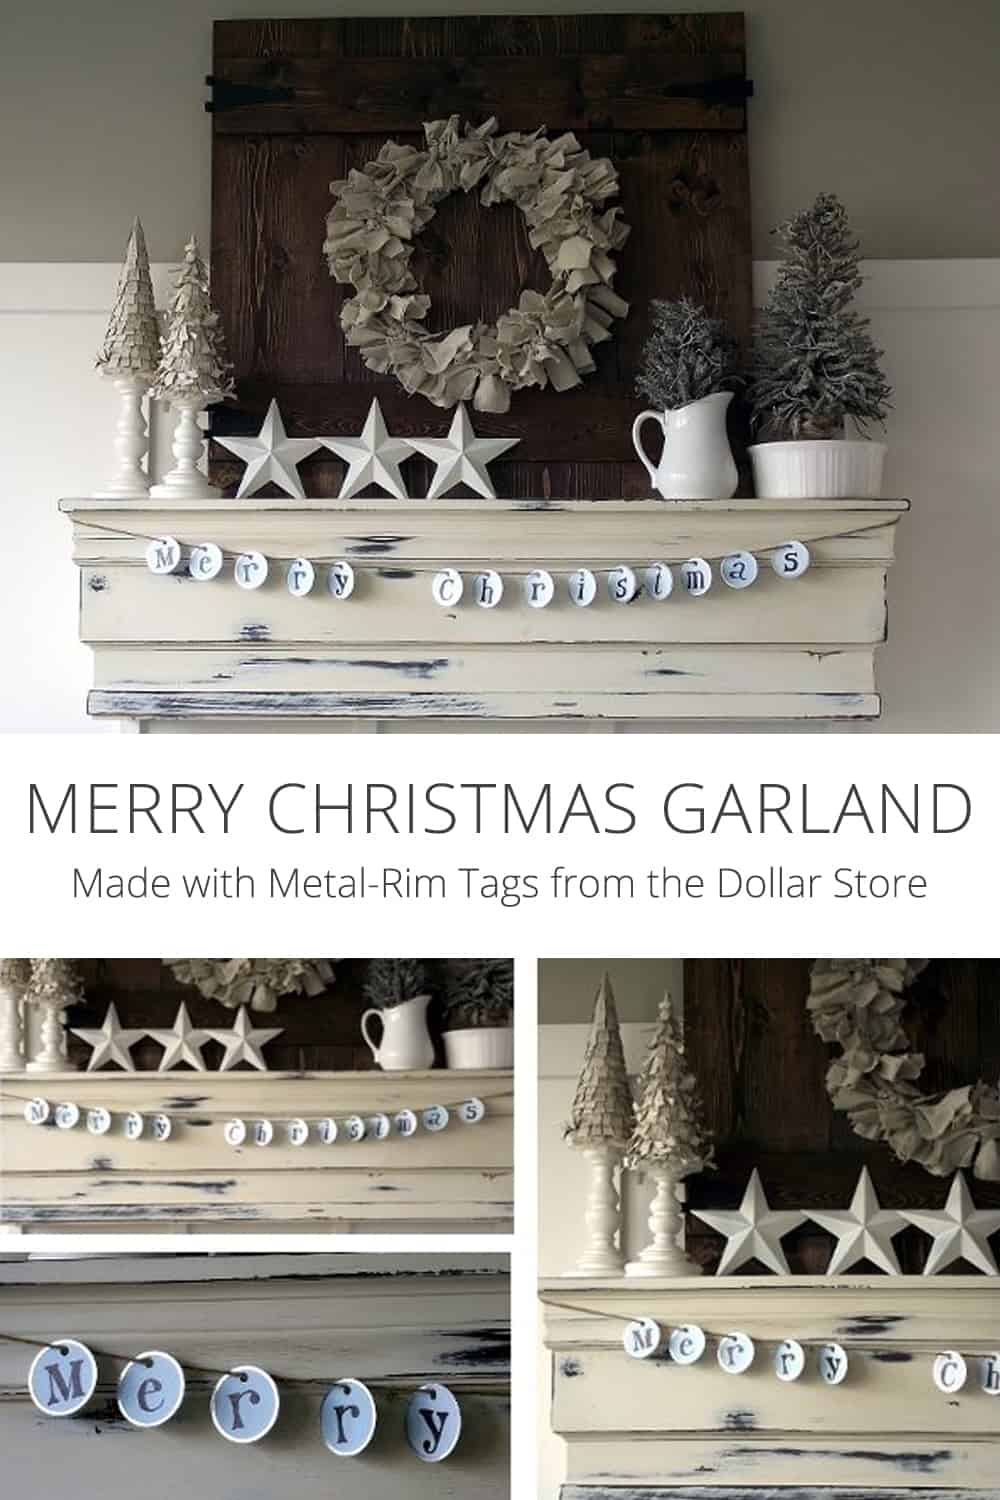 Merry Christmas Garland with Metal-Rim Tags from the Dollar Store